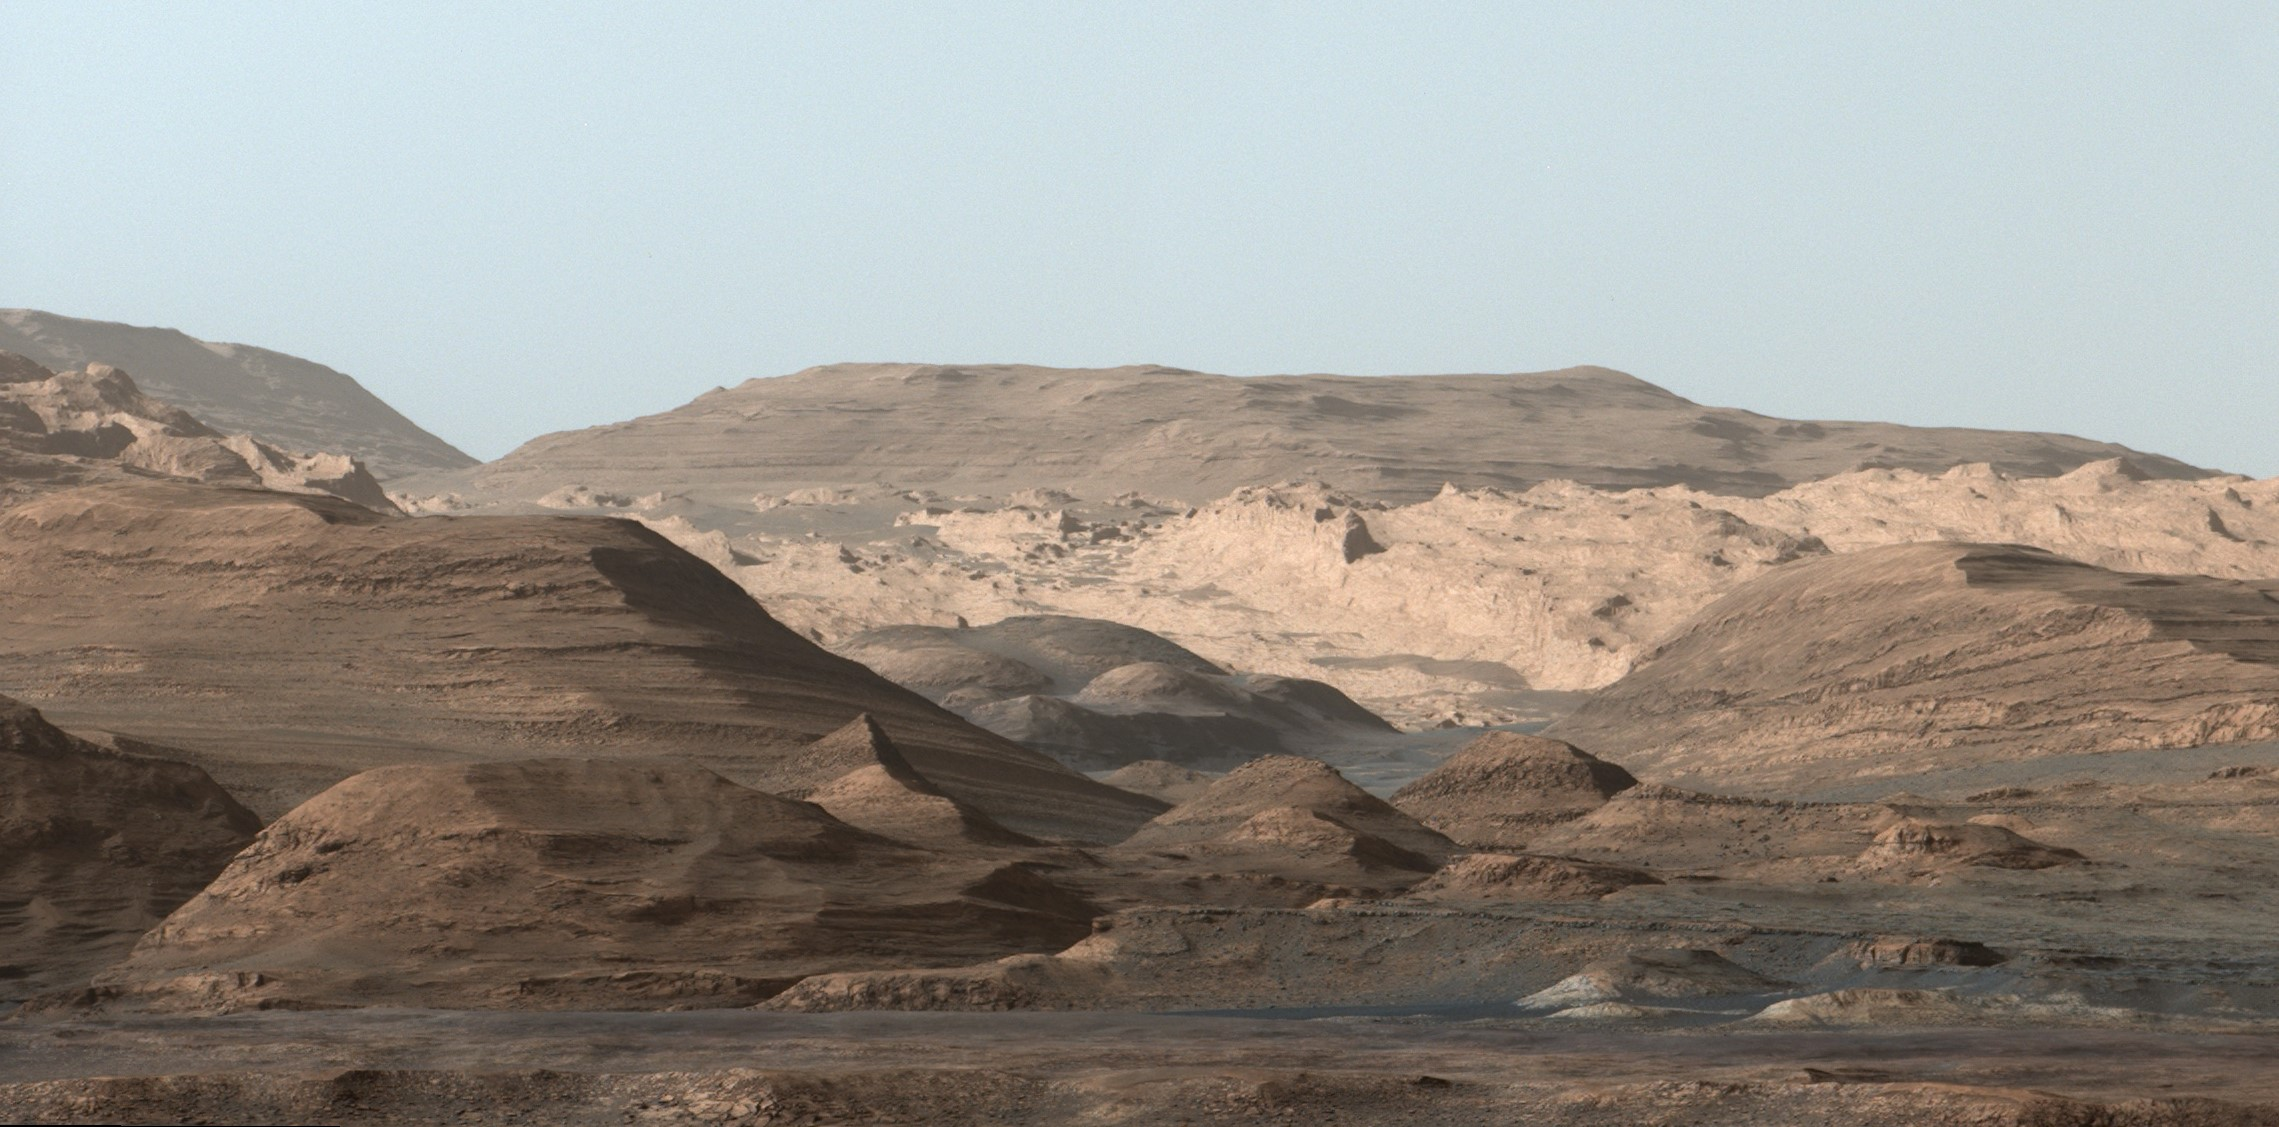 path curiosity rover gale crater - photo #29